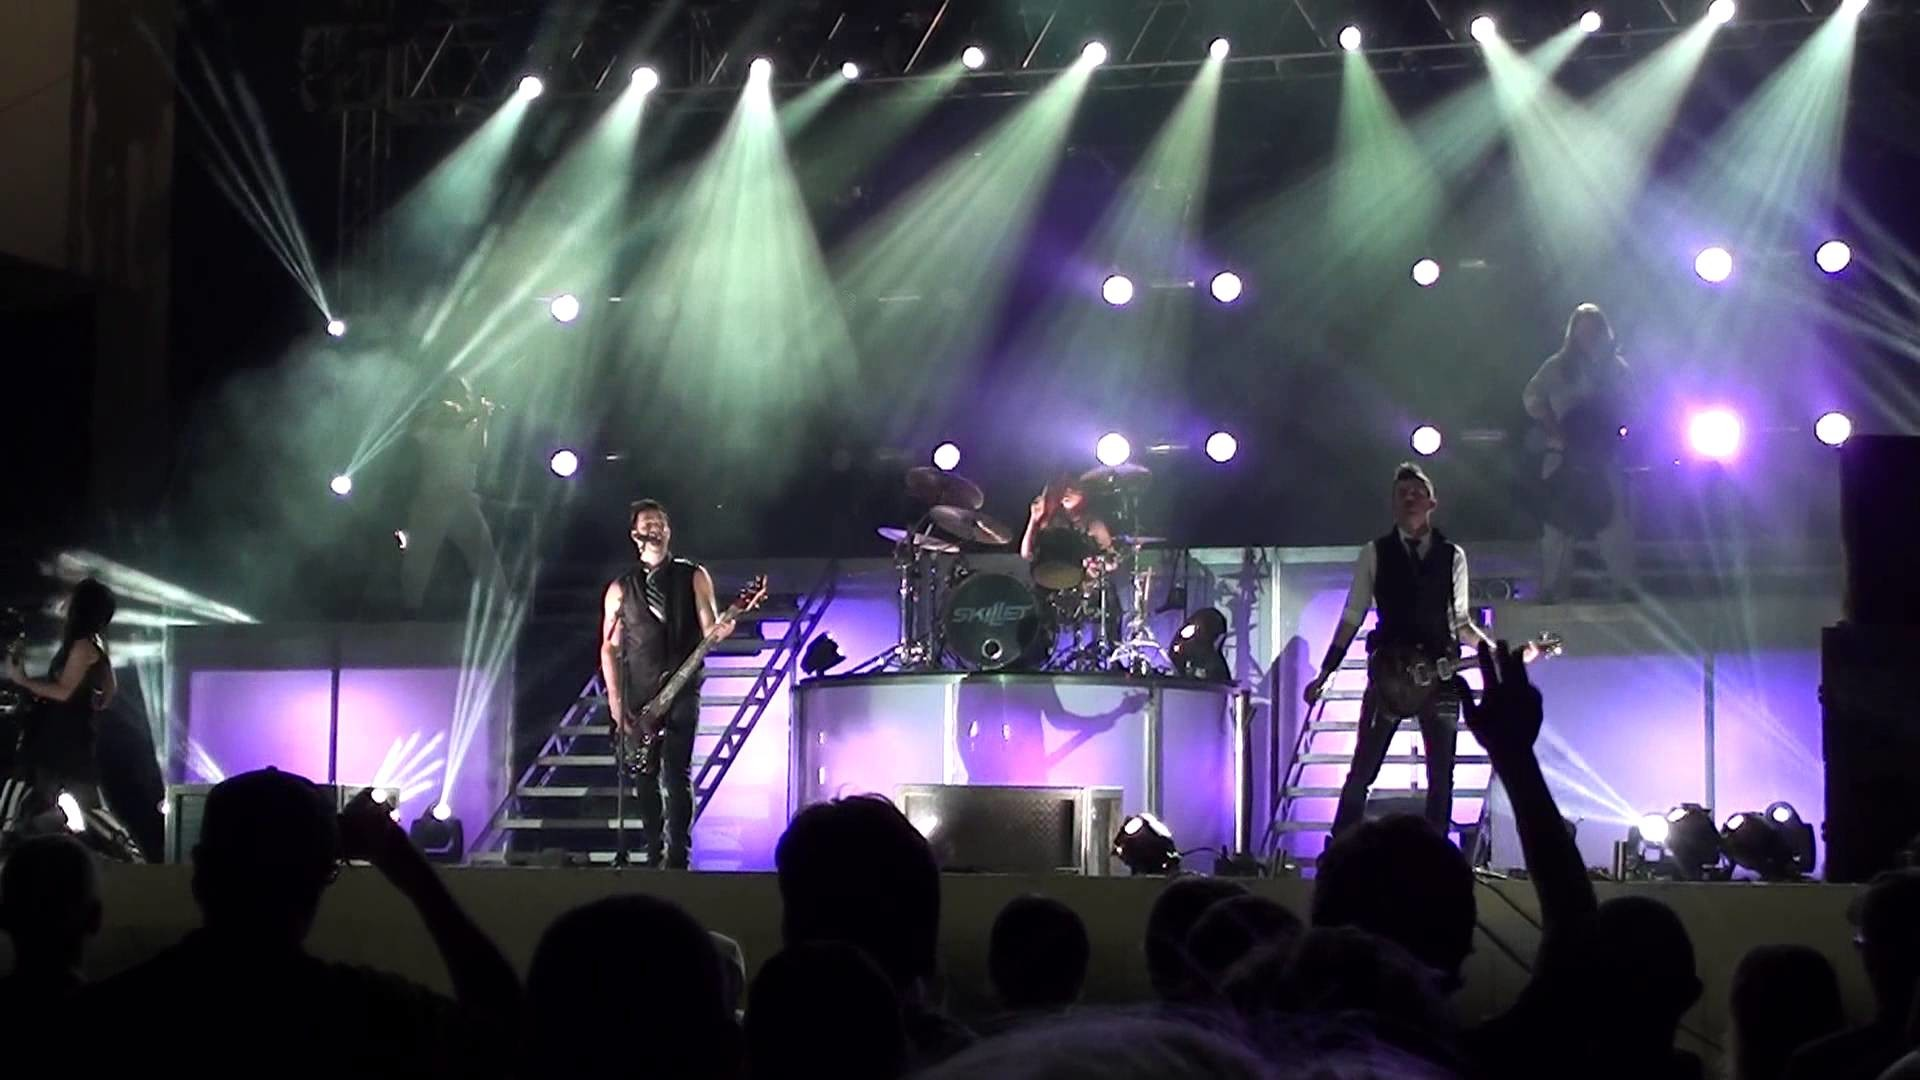 1920x1080 Skillet - The Last Night - New Show! - HD Video! - Live @ Kingsfest 2013